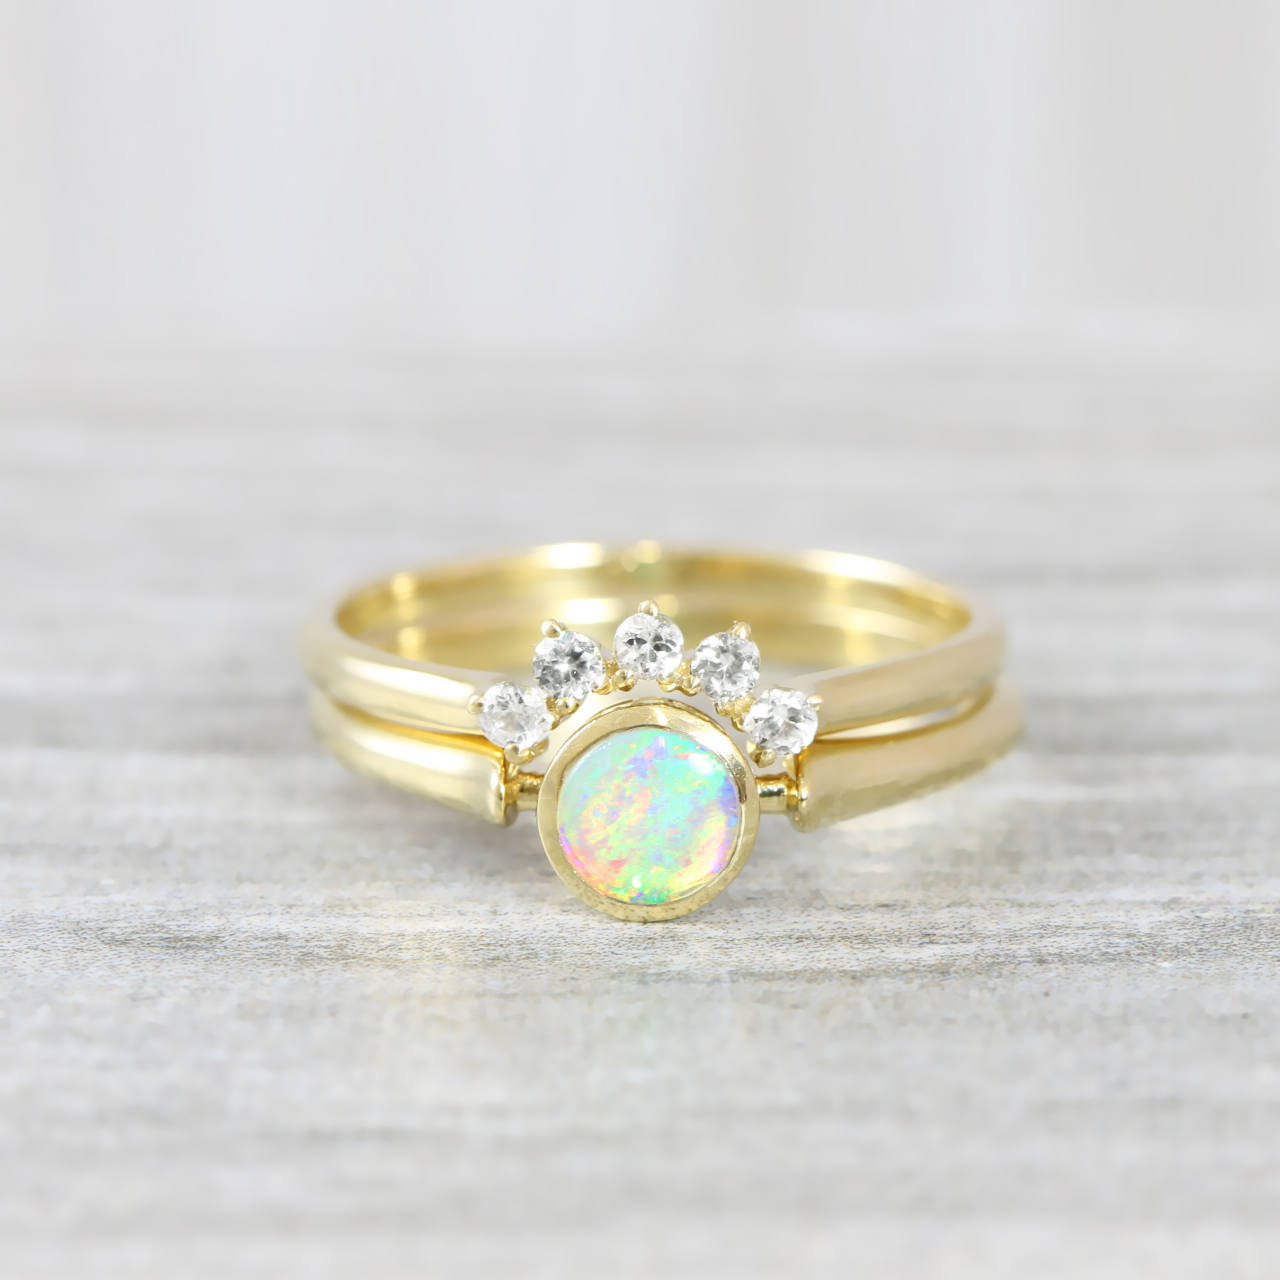 Opal And Diamond Engagement Wedding Ring Set Handmade In Rose/white/yellow  Gold Art Deco Inspired Thin Petite Band Minimal Simple Unique Regarding 2020 Diamond Art Deco Inspired Anniversary Bands In White Gold (Gallery 25 of 25)